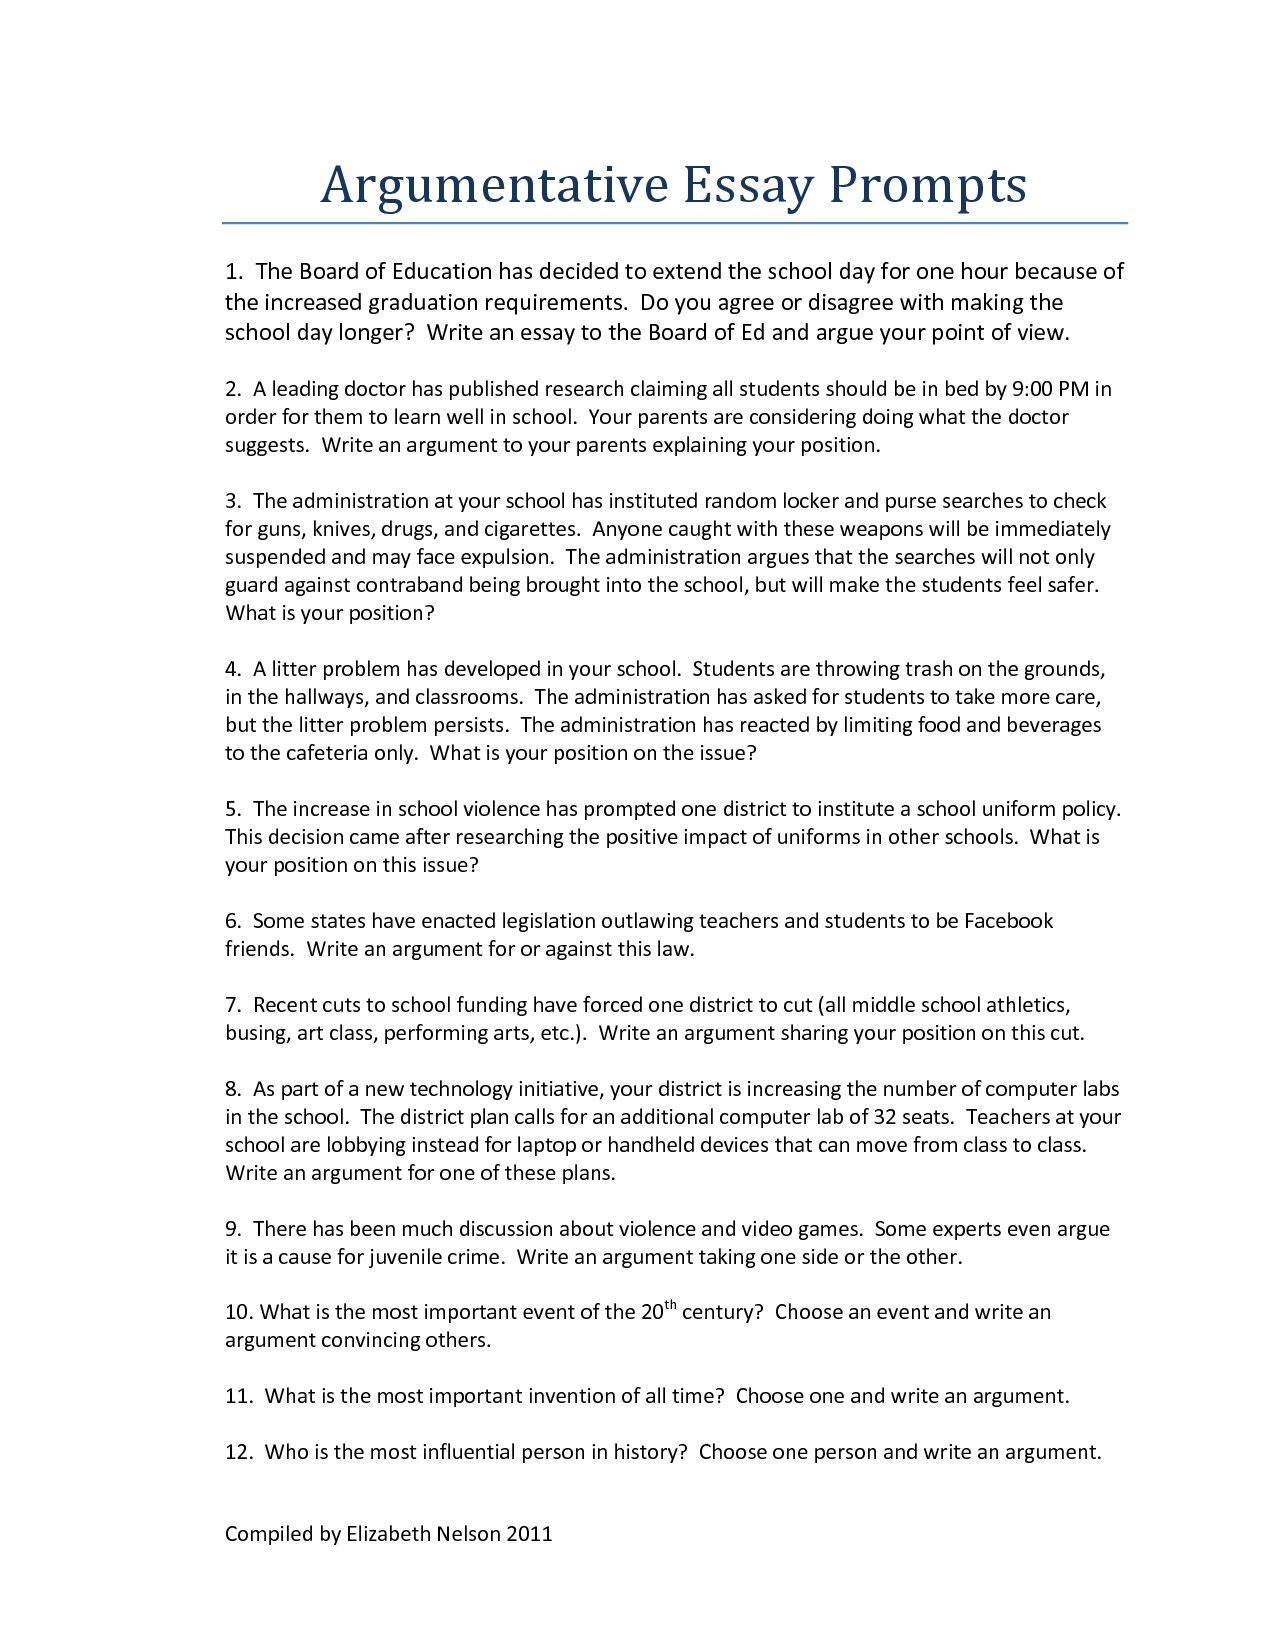 004 Topics For Argumentative Essays Essay Example Middle School Writings And Good Persuasive High Argument Speech About Uniform Education Uniforms Rules Incredible Grade 7 College Students Easy Sample Full